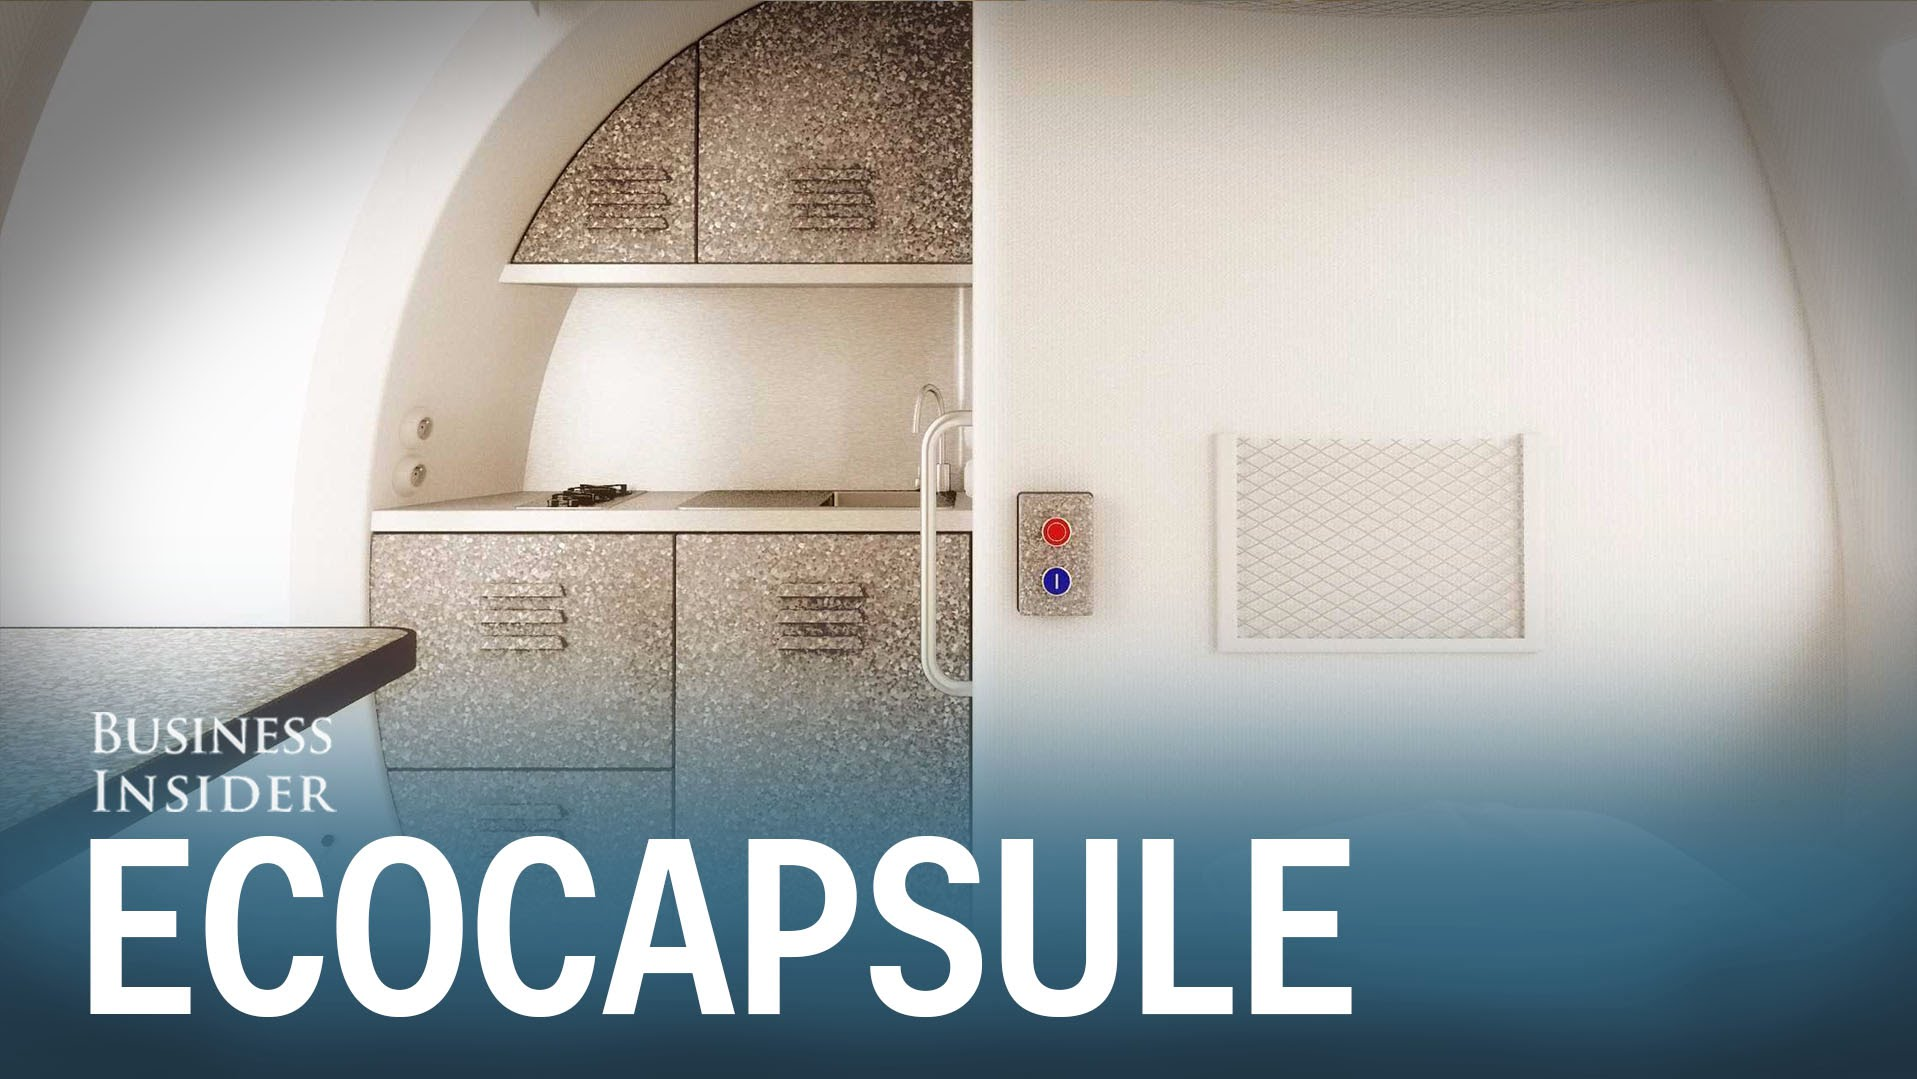 Ecocapsule: A Self-Sustained Home